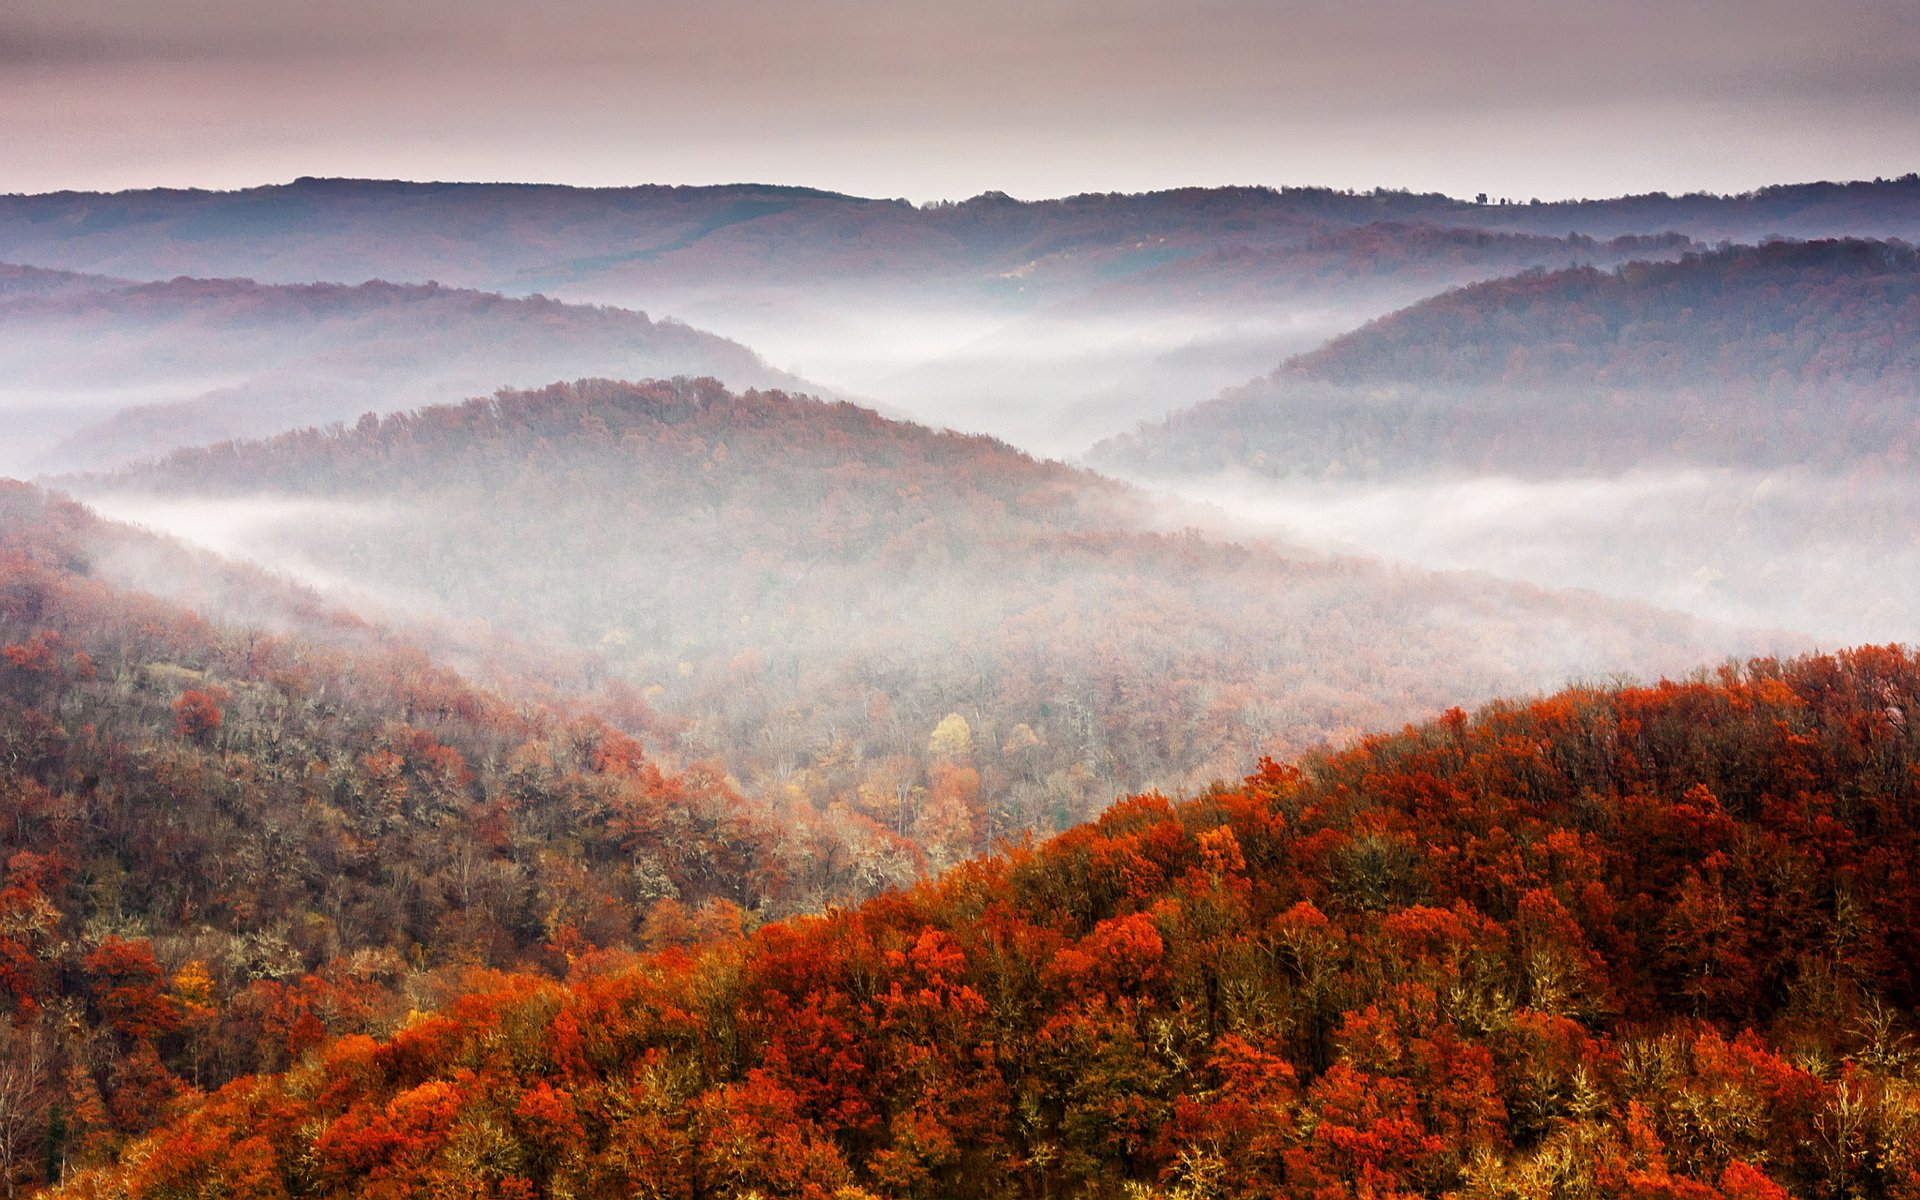 Fall Scenery Mountains HD Wallpapers 20